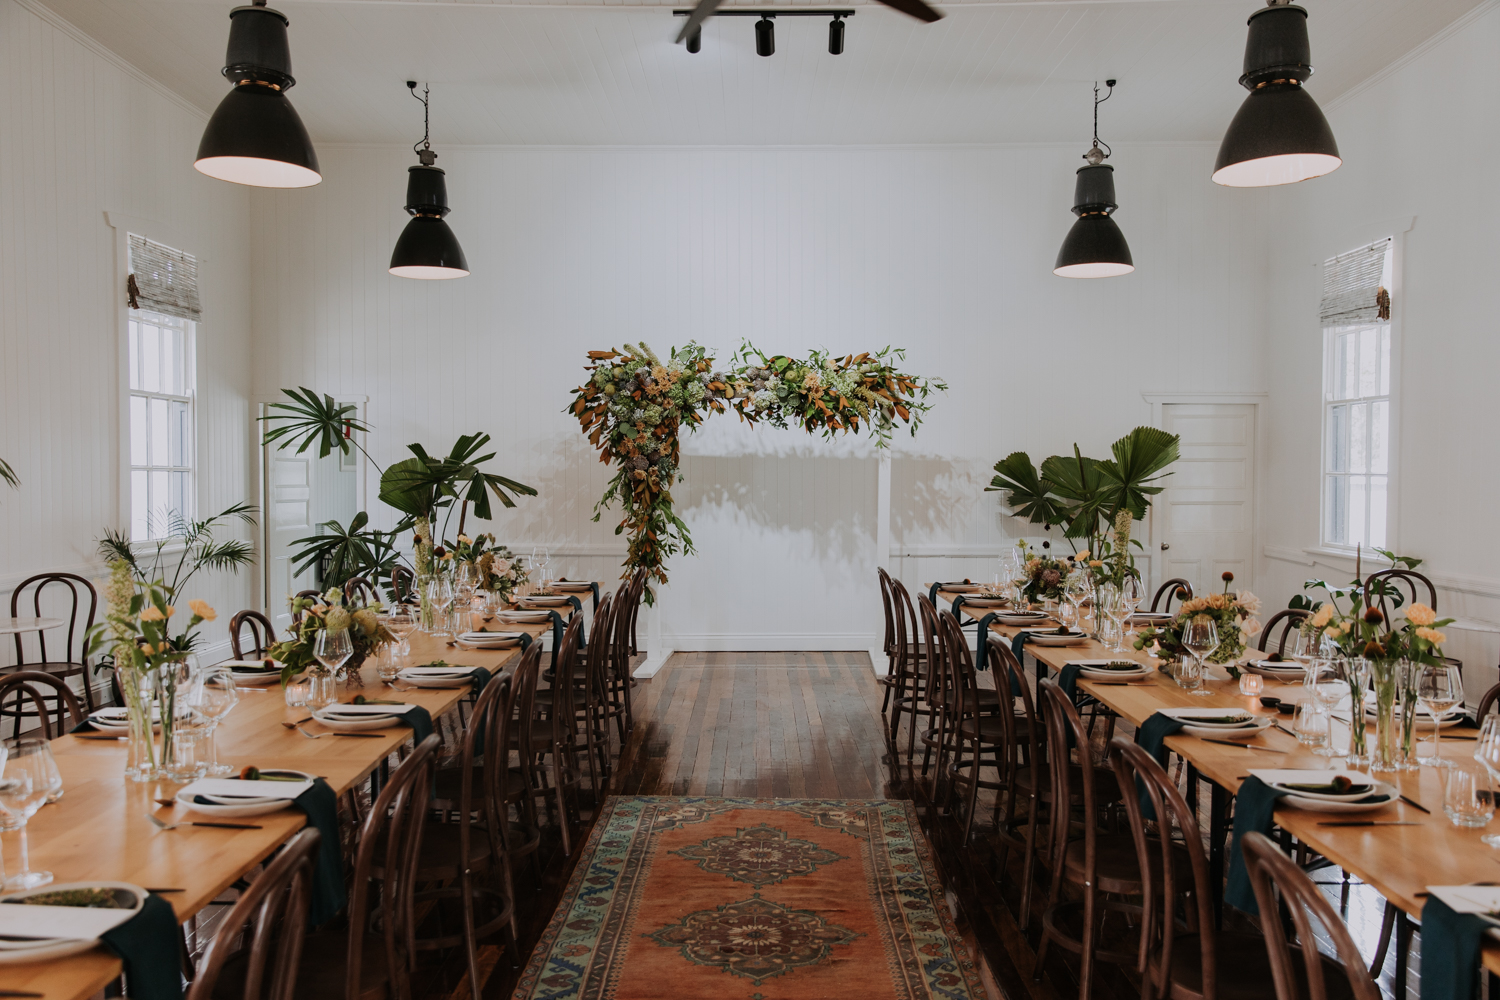 white+white weddings and events the wedding school loyal hope of the valley reception styled floral design altar